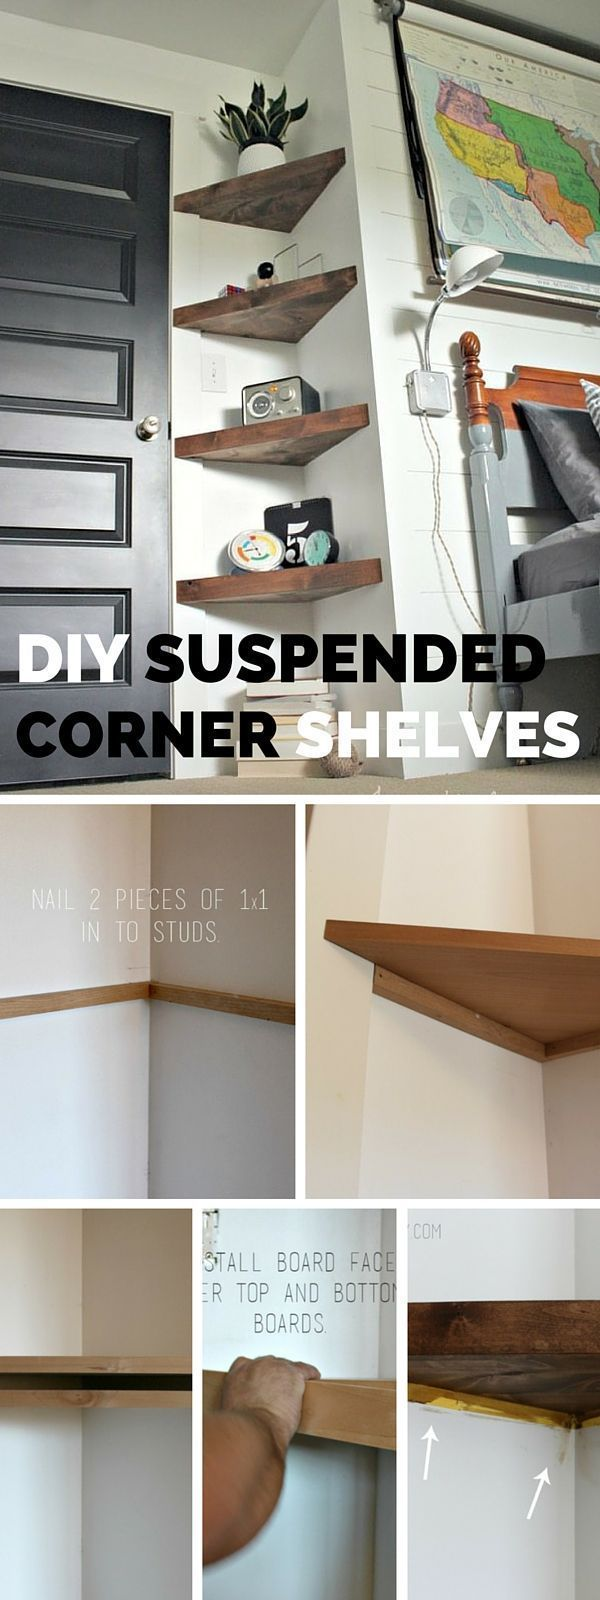 awesome 12 Simply Genius DIY Storage Solutions for a Neat Home by ...